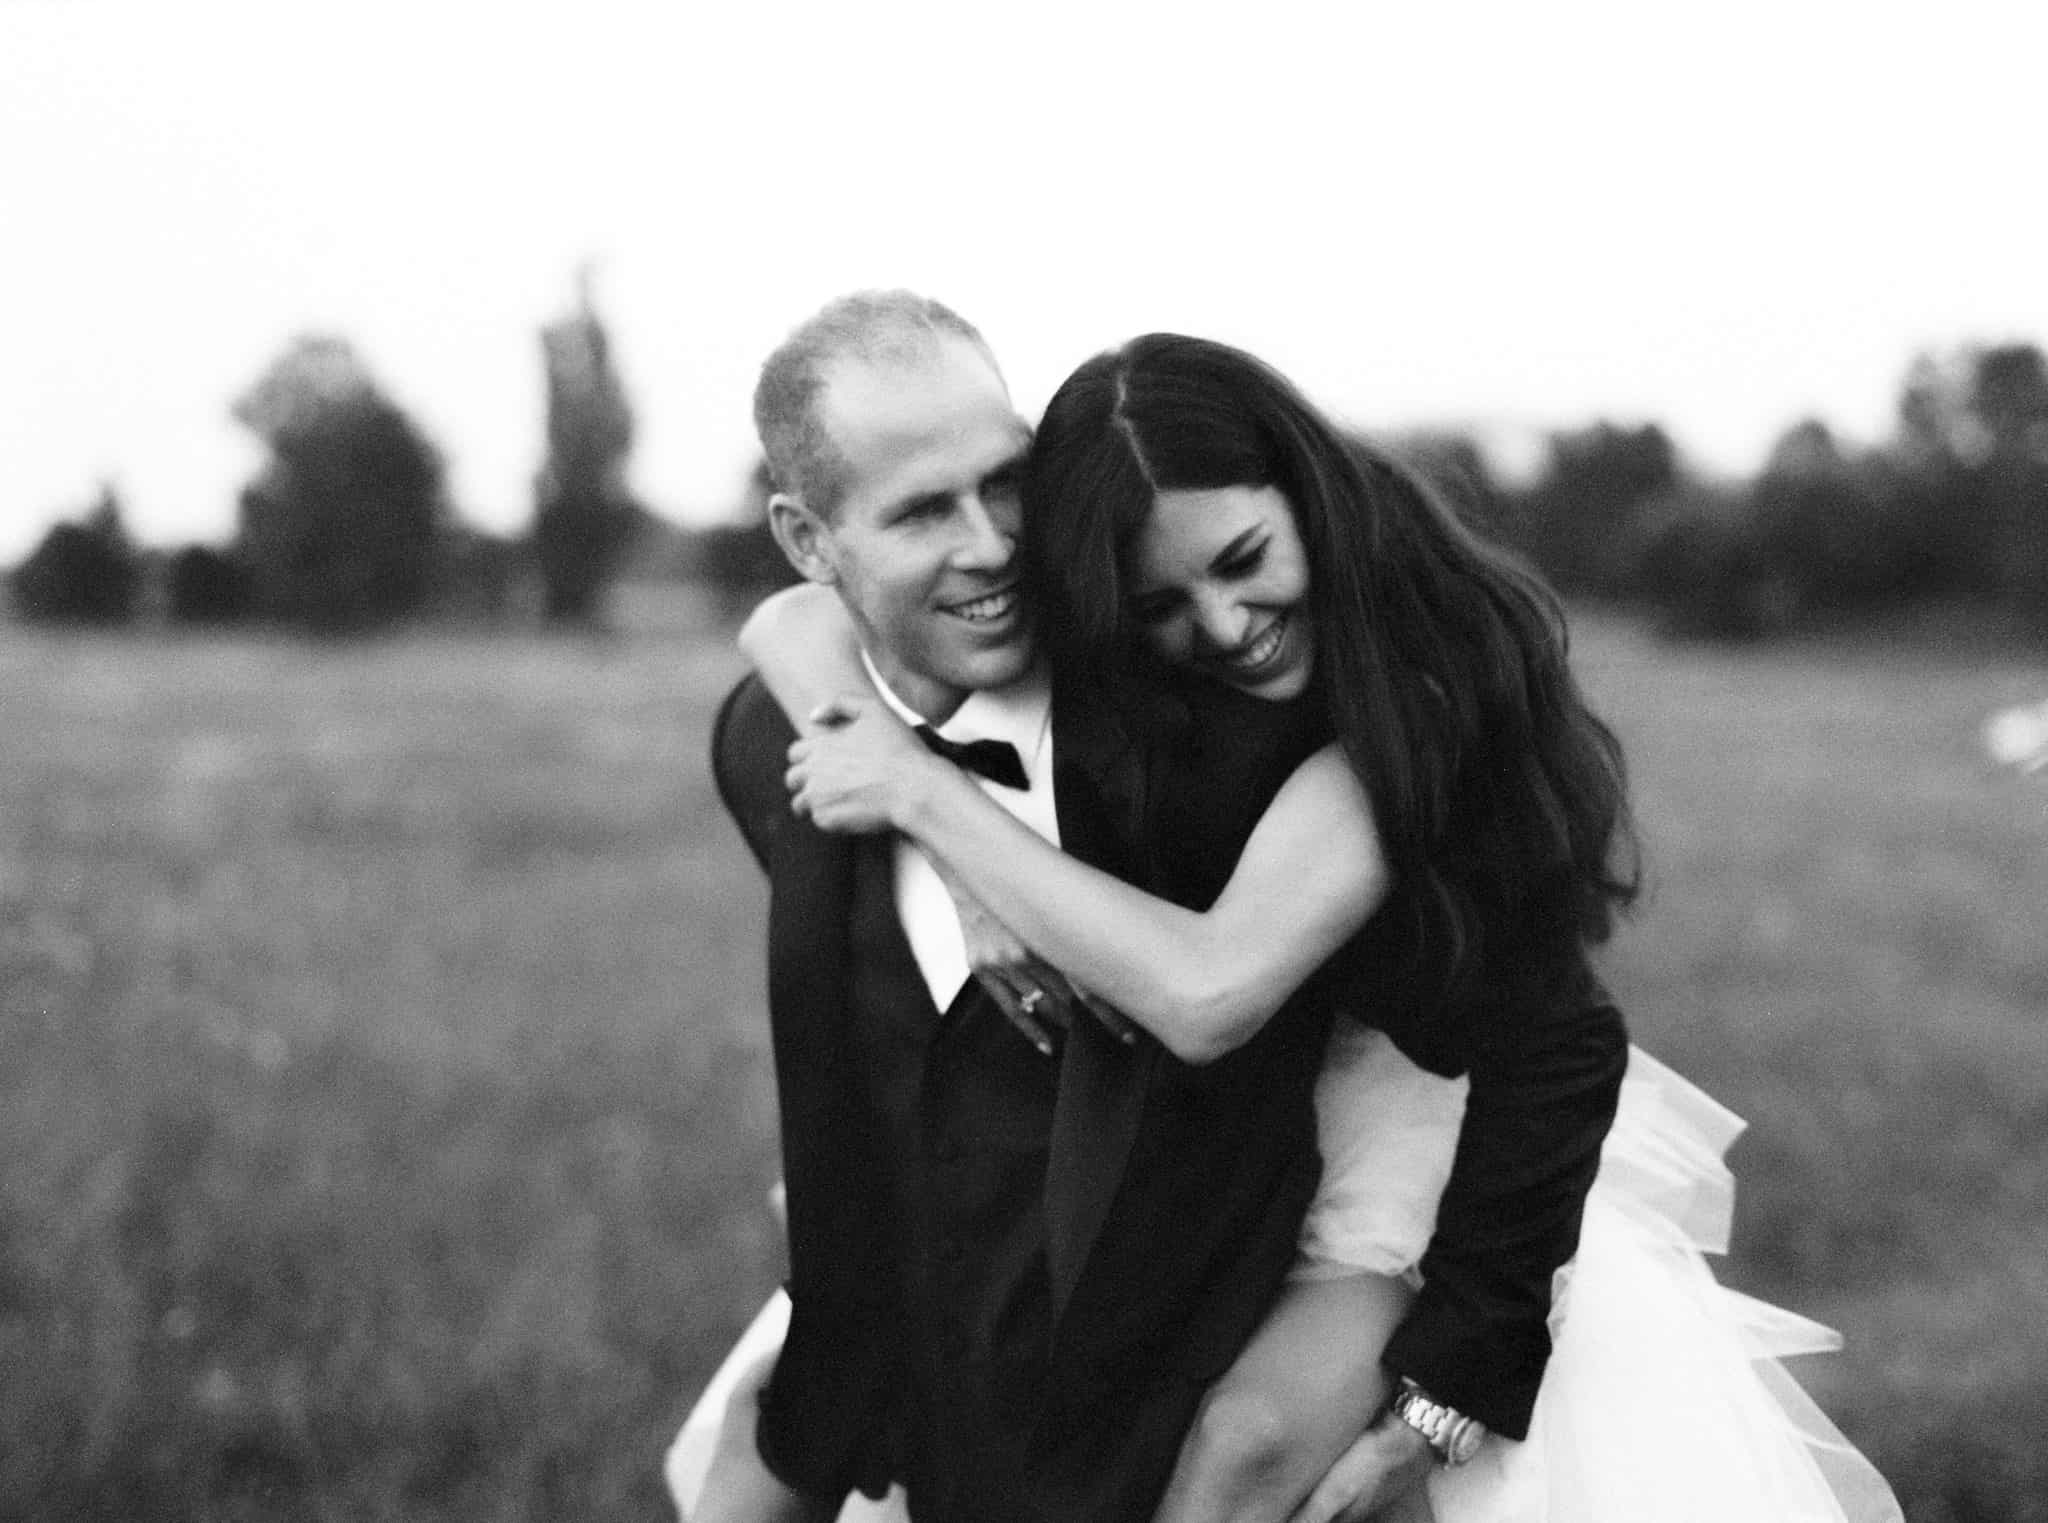 Wedoverhills_Prewedding_Film_Photographer_Hungary_0043